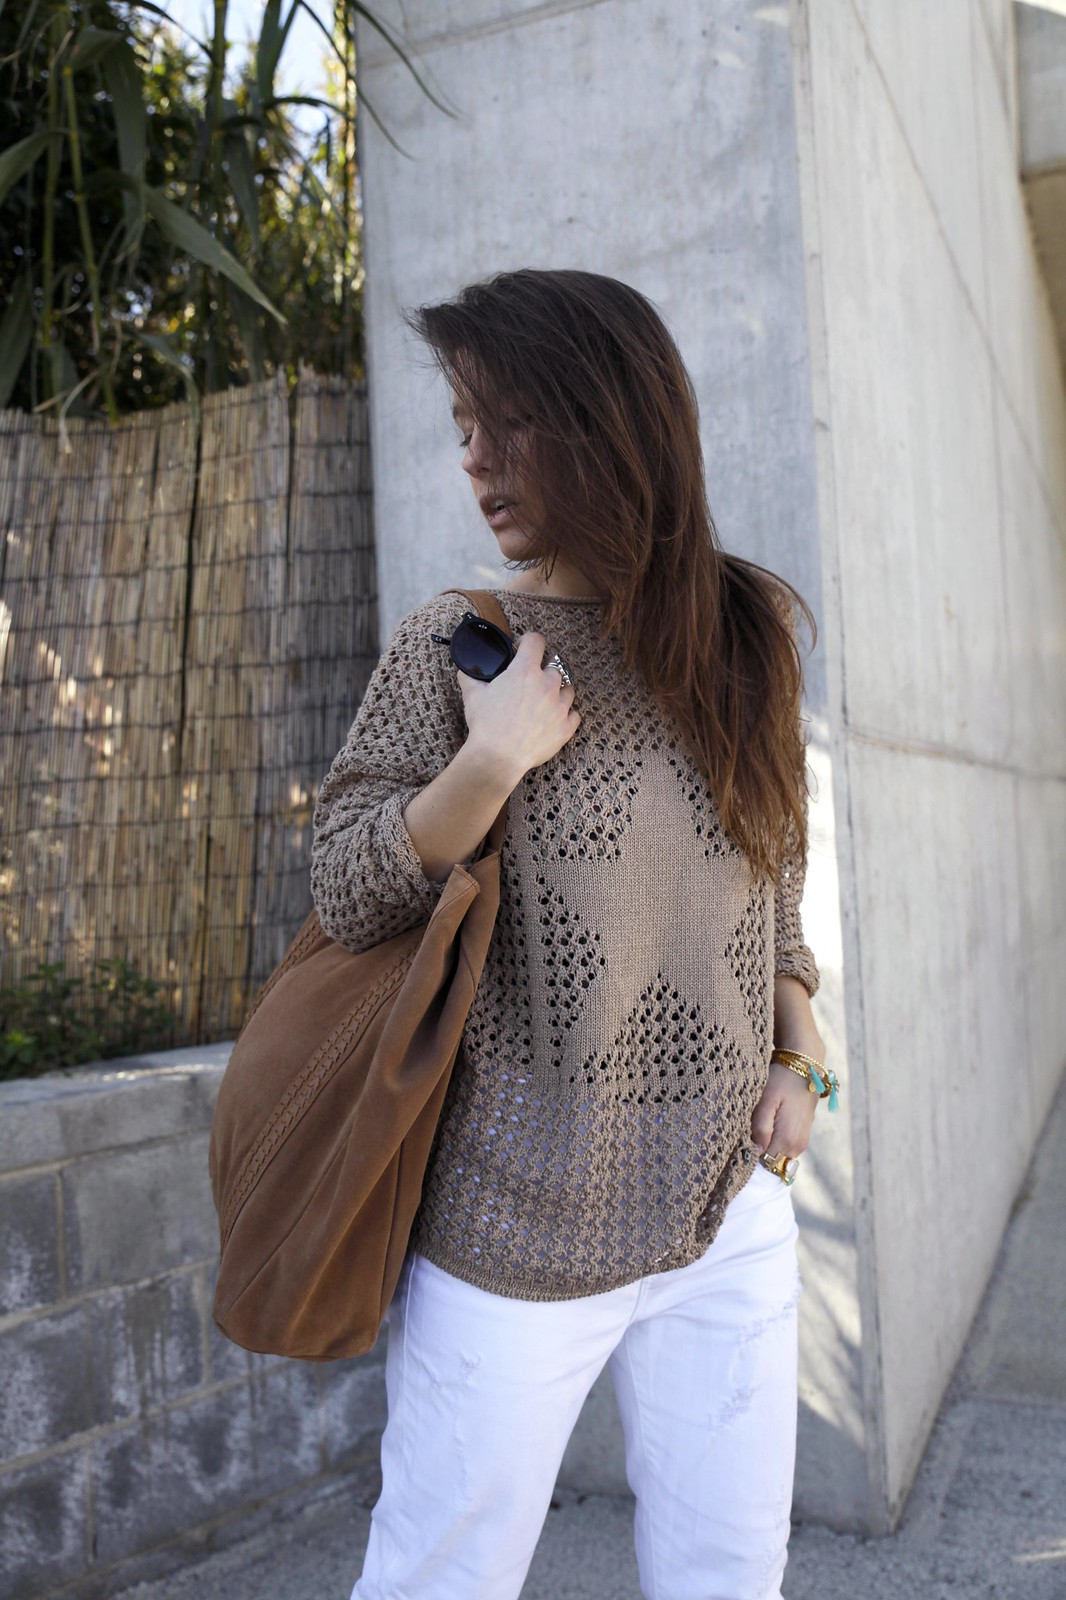 016_SPRING_NEUTRAL_OUTFIT_STREET_STYLE_FASHION_BLOGGER_INFLUENCER_BARCELONA_THEGUESTGIRL